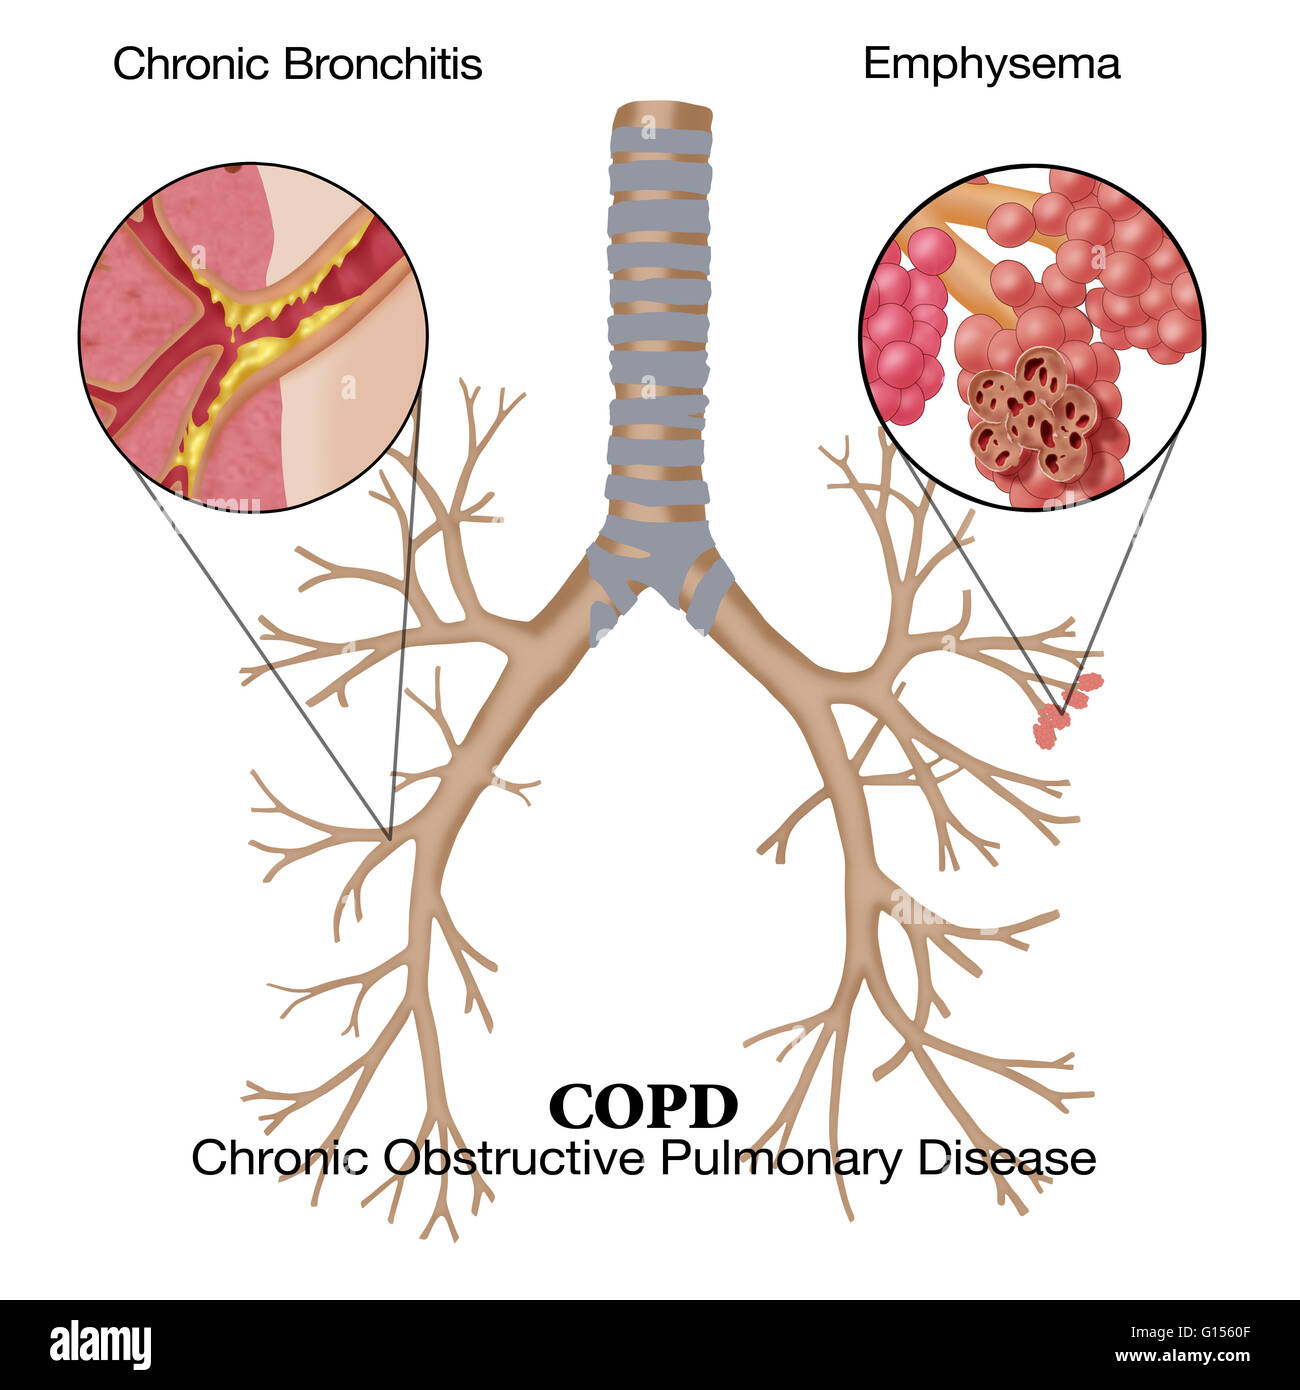 Illustration Of Chronic Obstructive Pulmonary Disease. Kirstin Signs Of Stroke. Popcorn Signs. Politician Signs Of Stroke. Literary Signs Of Stroke. Sigma Signs Of Stroke. May Signs Of Stroke. Transparent White Signs. 25 December Signs